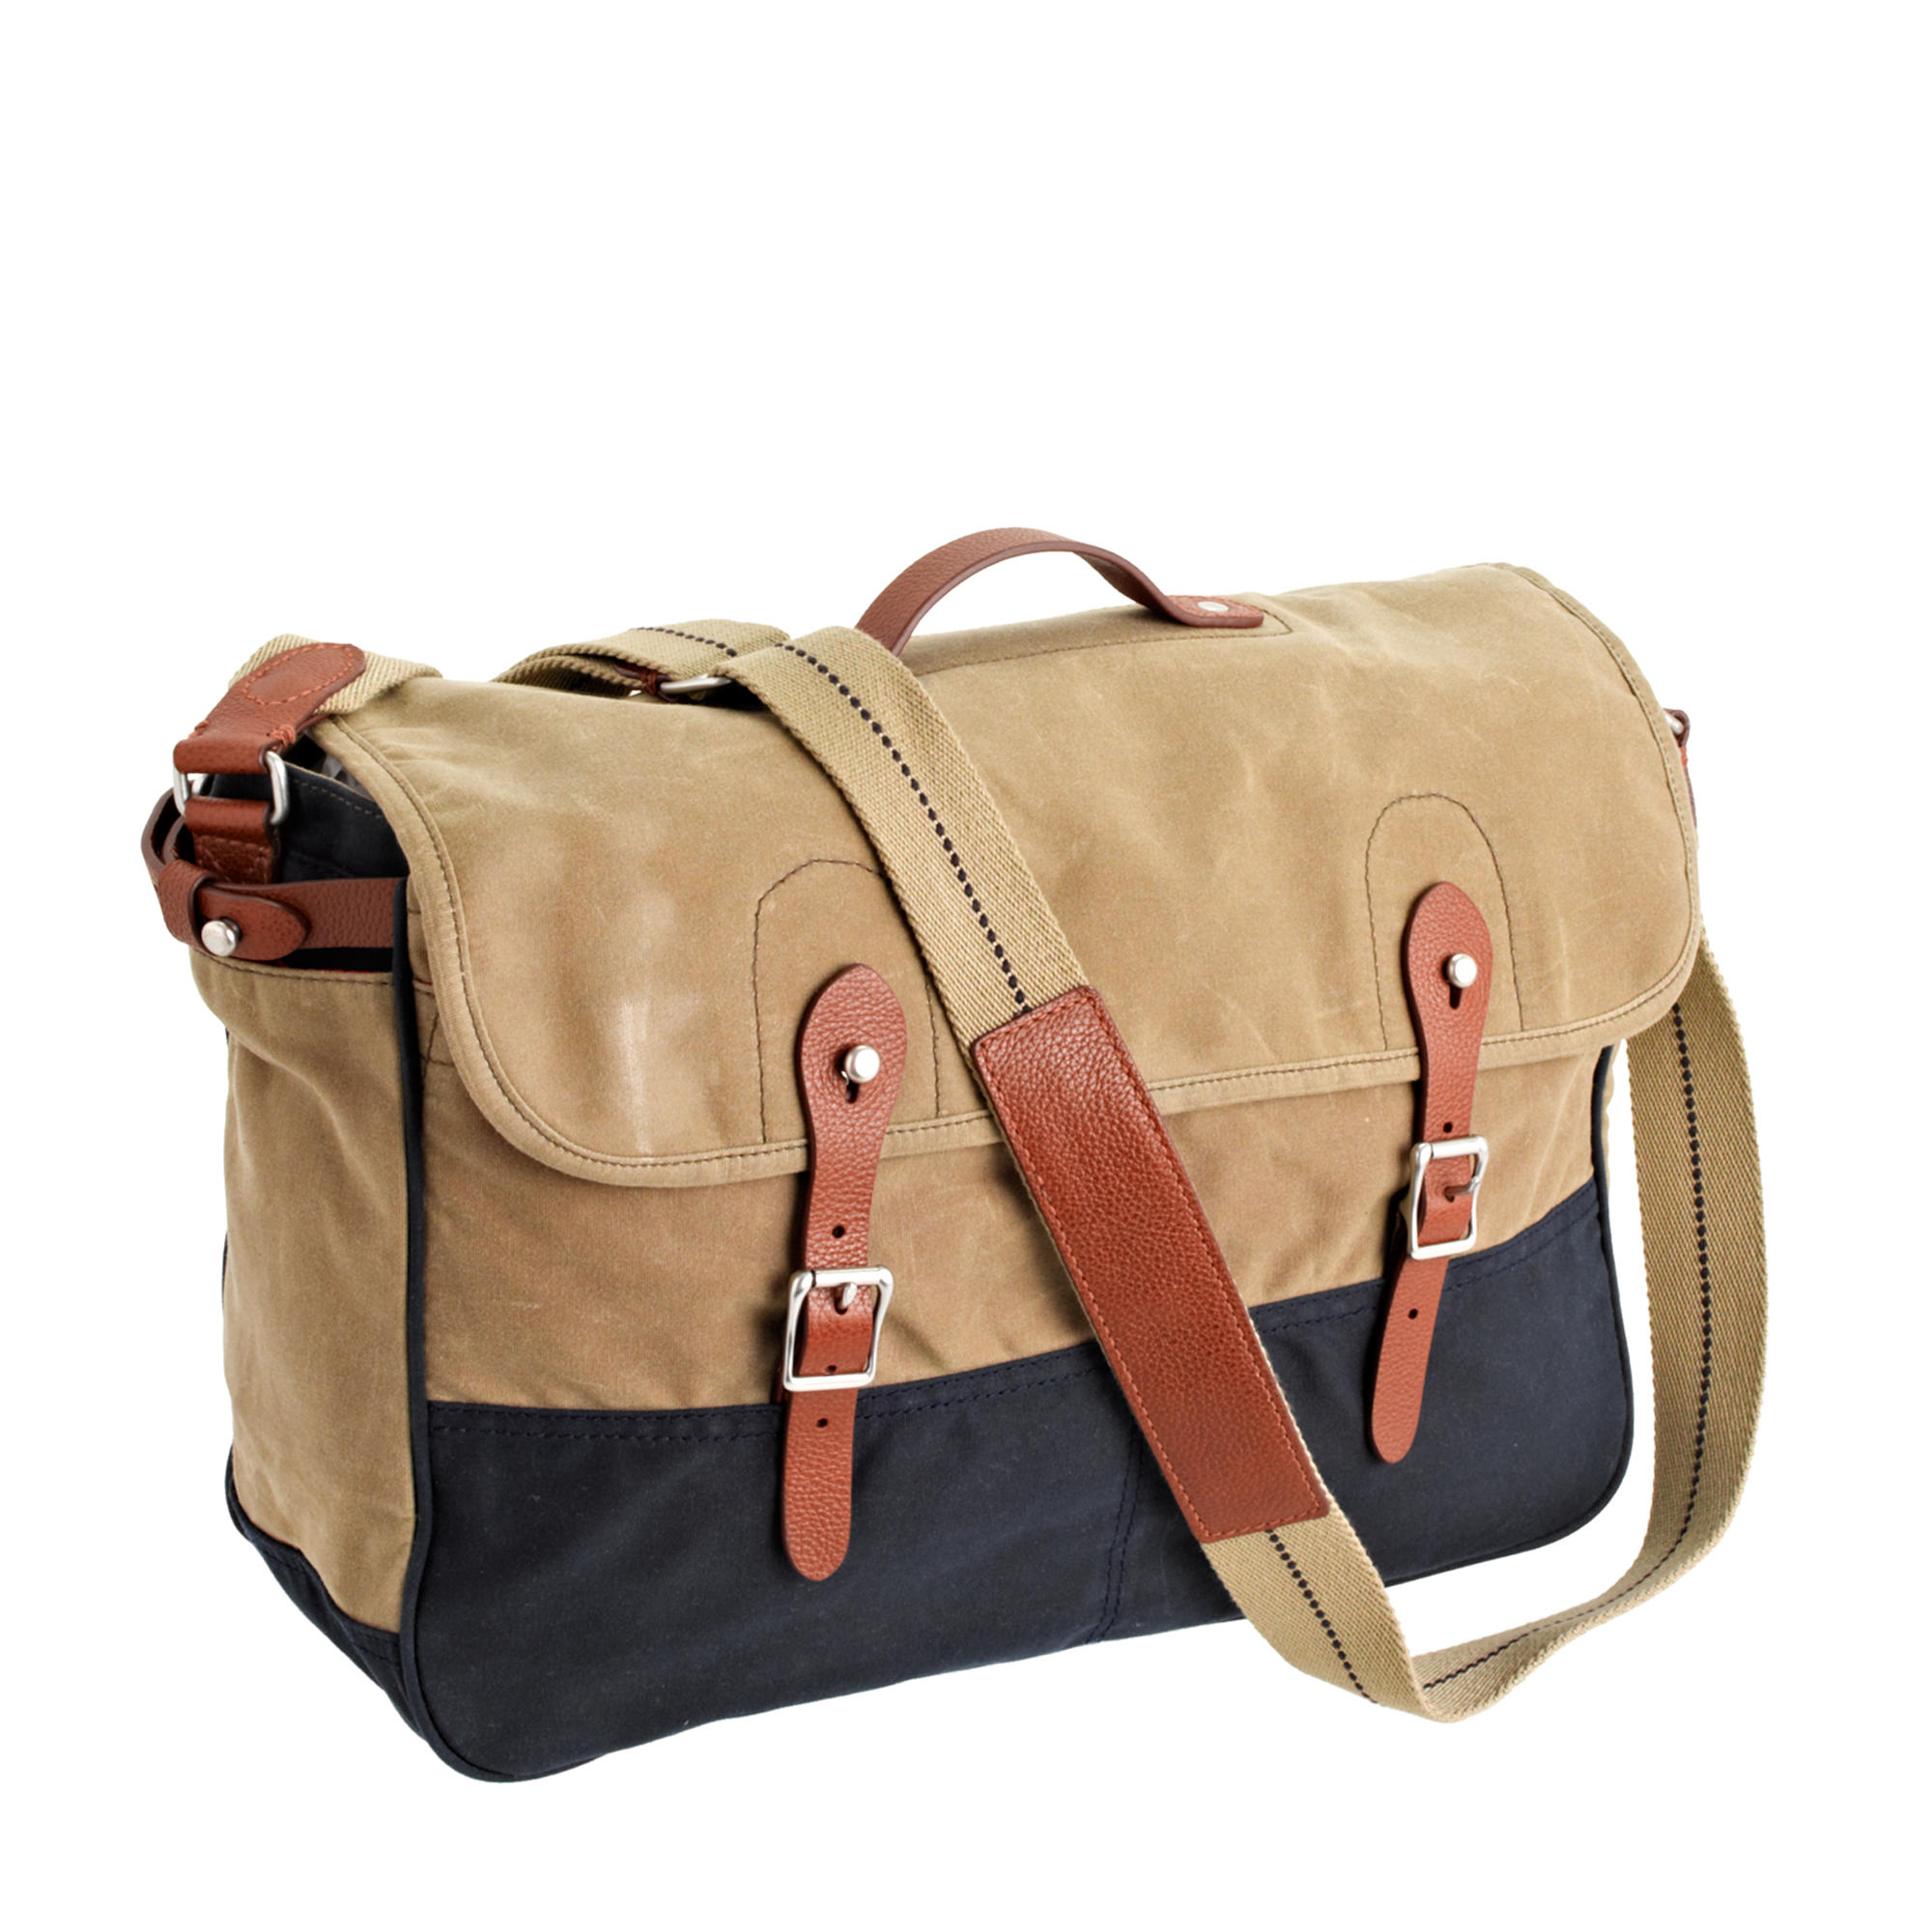 Lyst - J.Crew Abingdon Messenger Bag In Two-Tone in Natural for Men cc73b1c9605f5